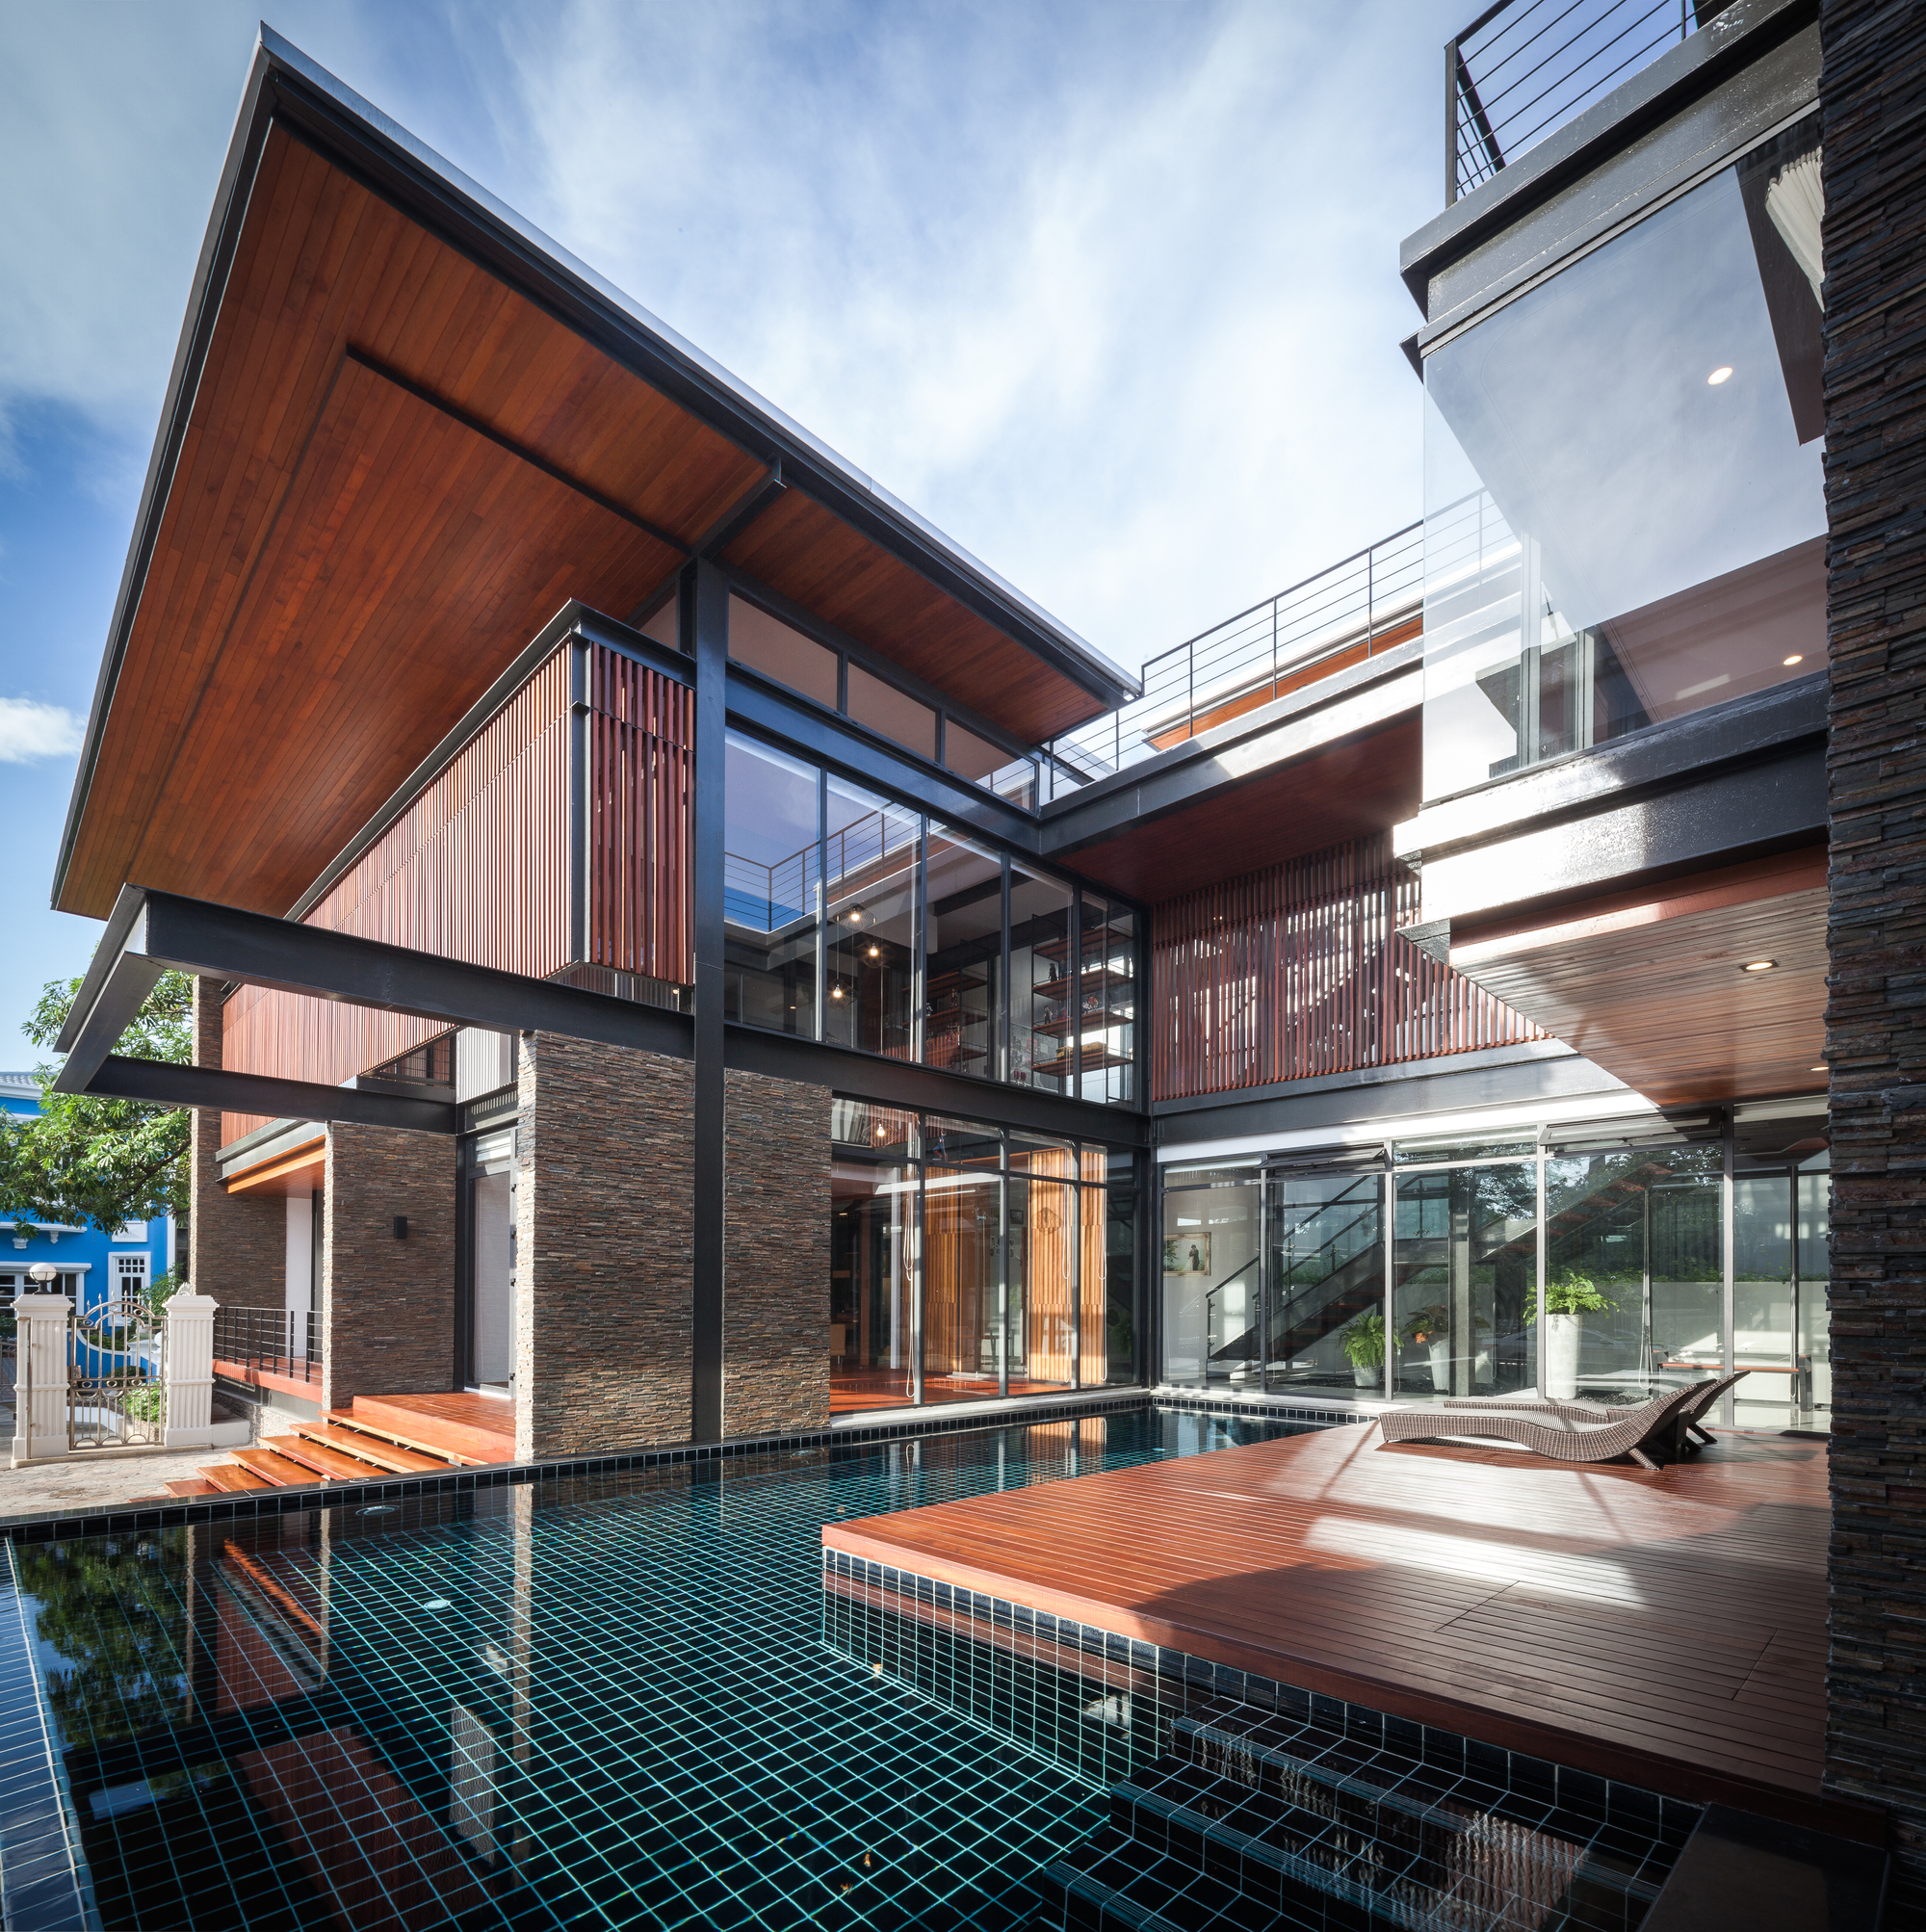 15 Articles To Help Organize Your Home For The New Year: Bridge House / Junsekino Architect And Design